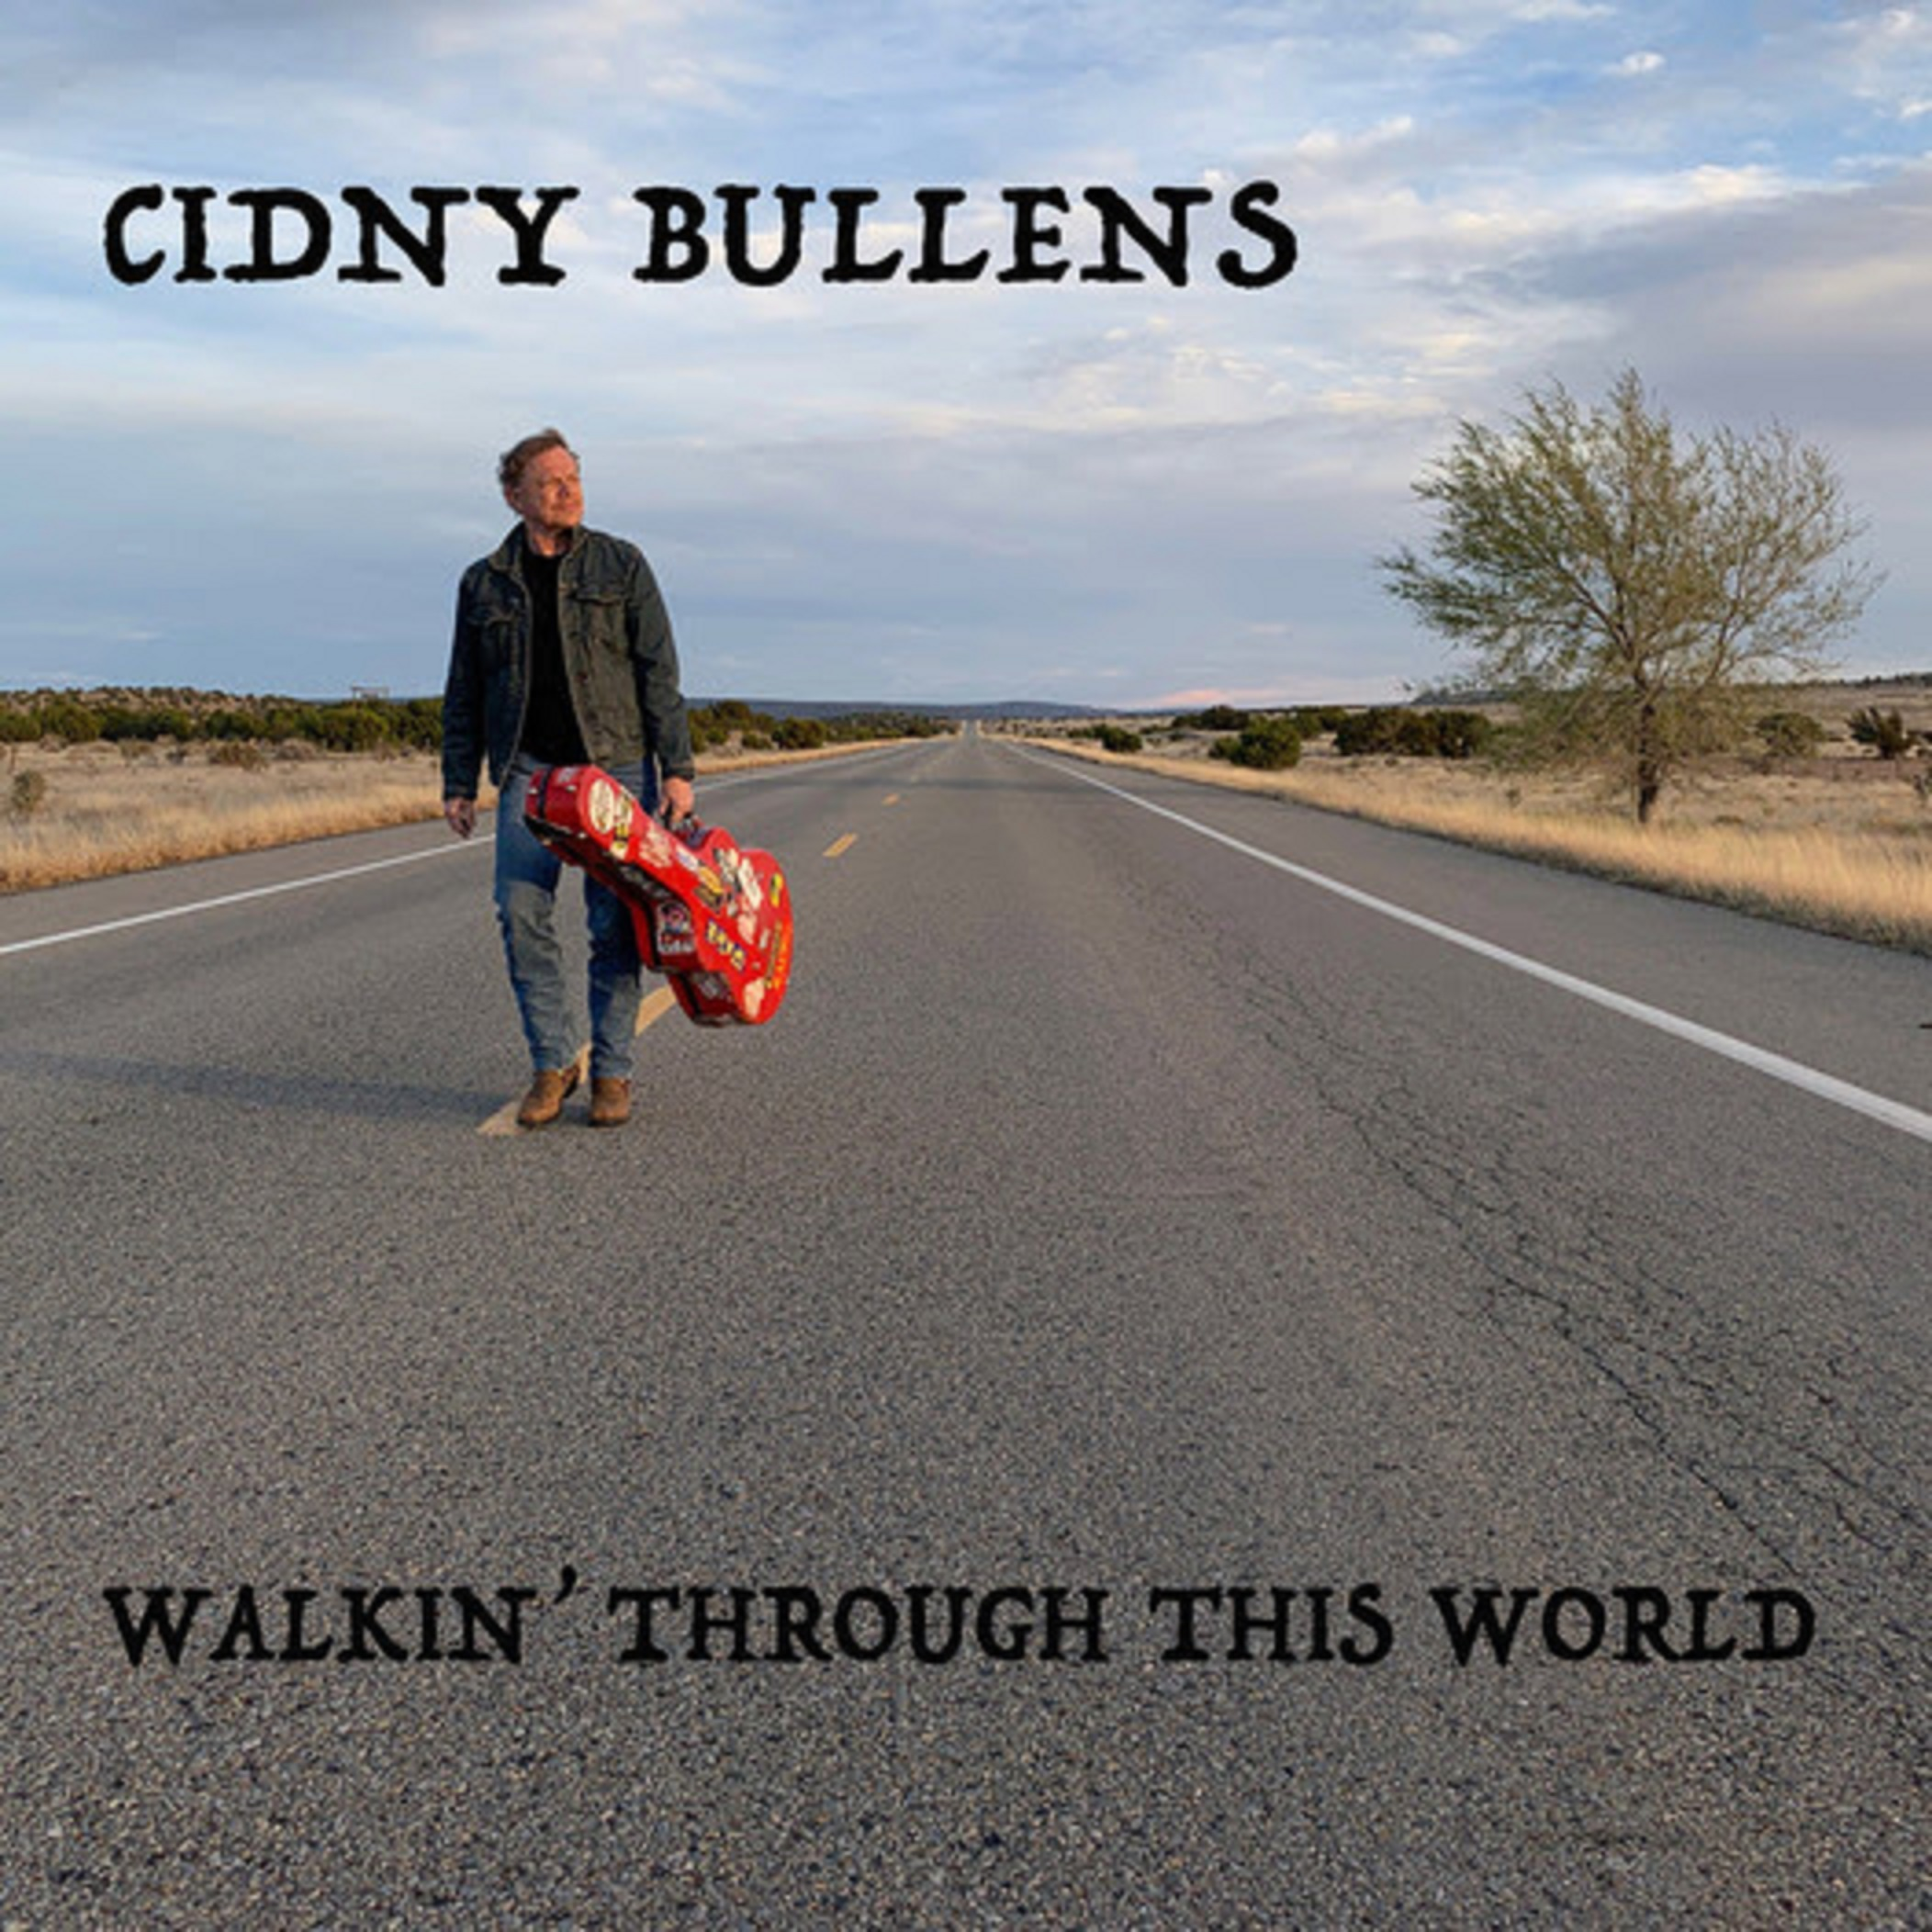 Cidny Bullens' 'Walkin' Through This World' set for August 21st release